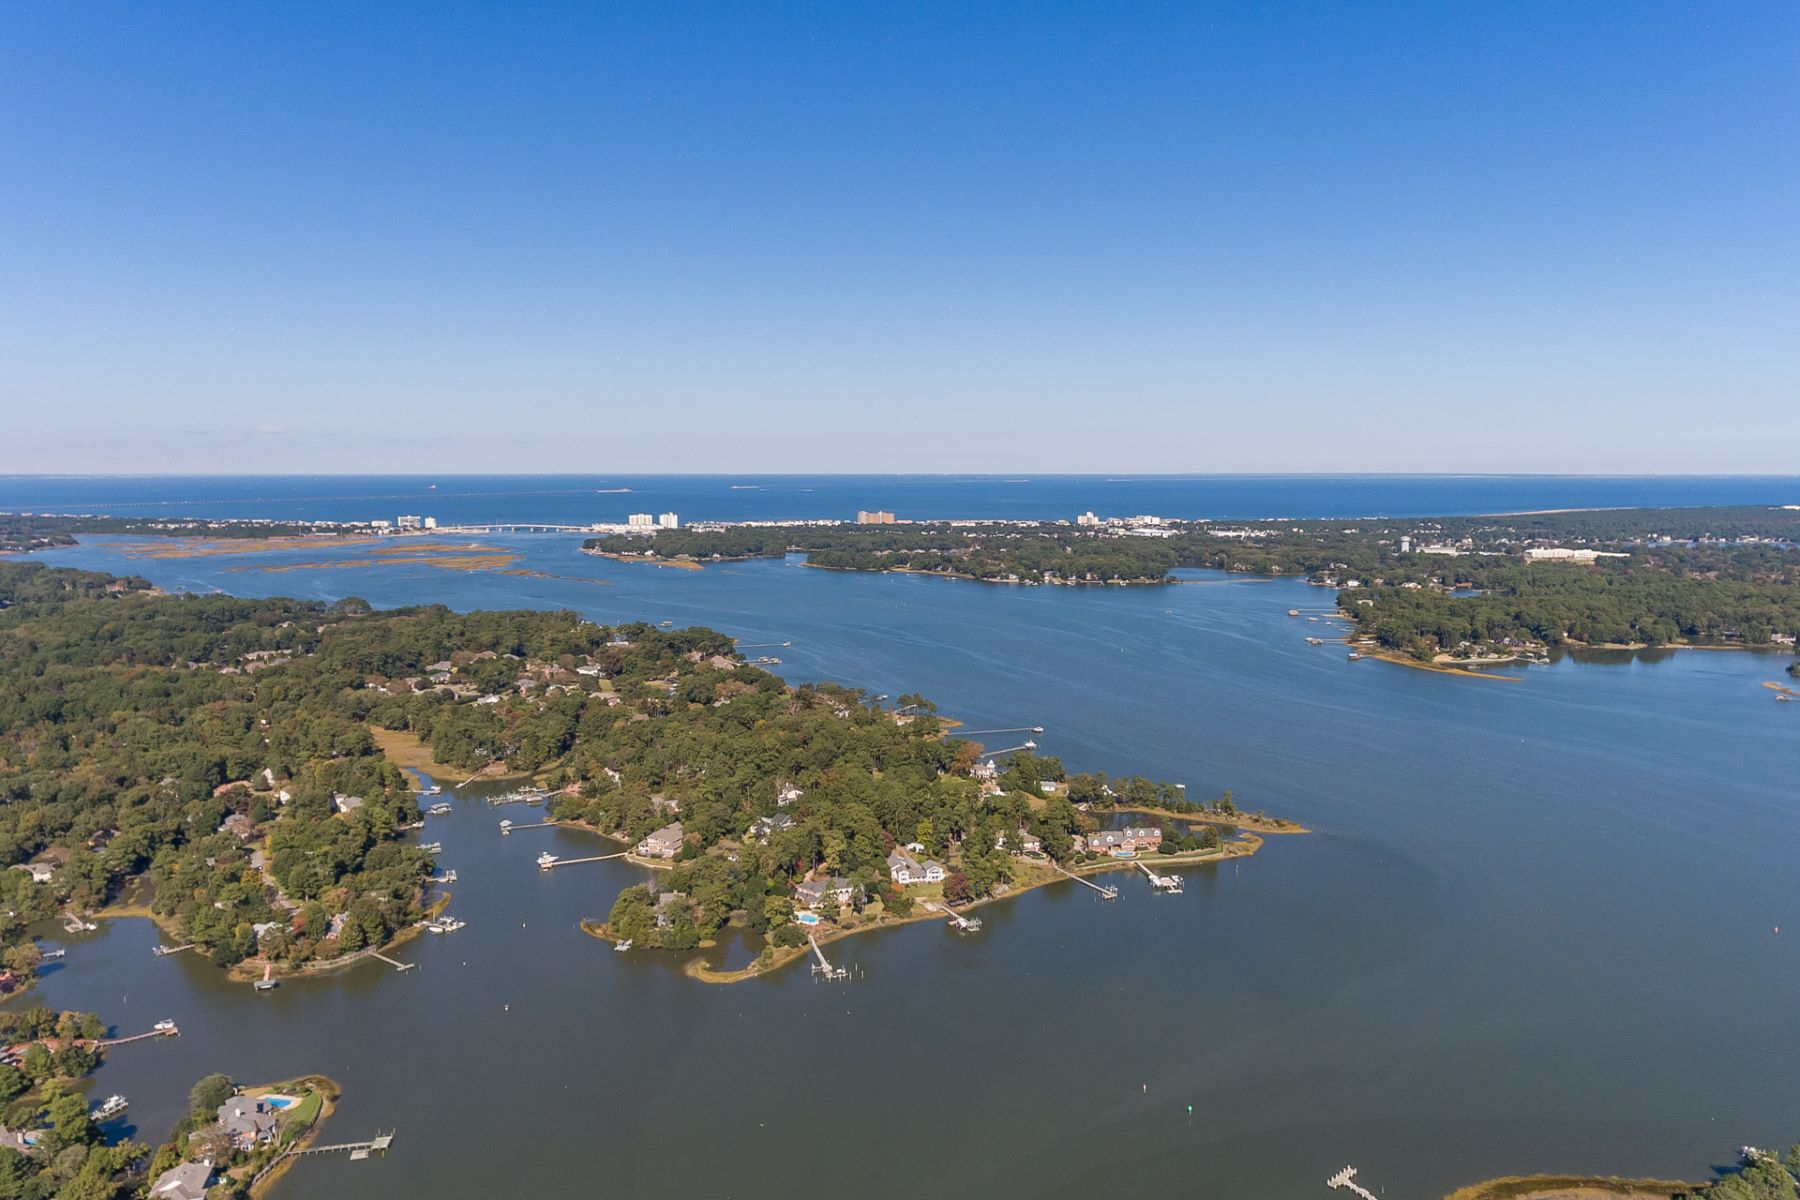 Single Family Home for Sale at Little Neck 3032 Little Haven Rd Virginia Beach, Virginia 23452 United States